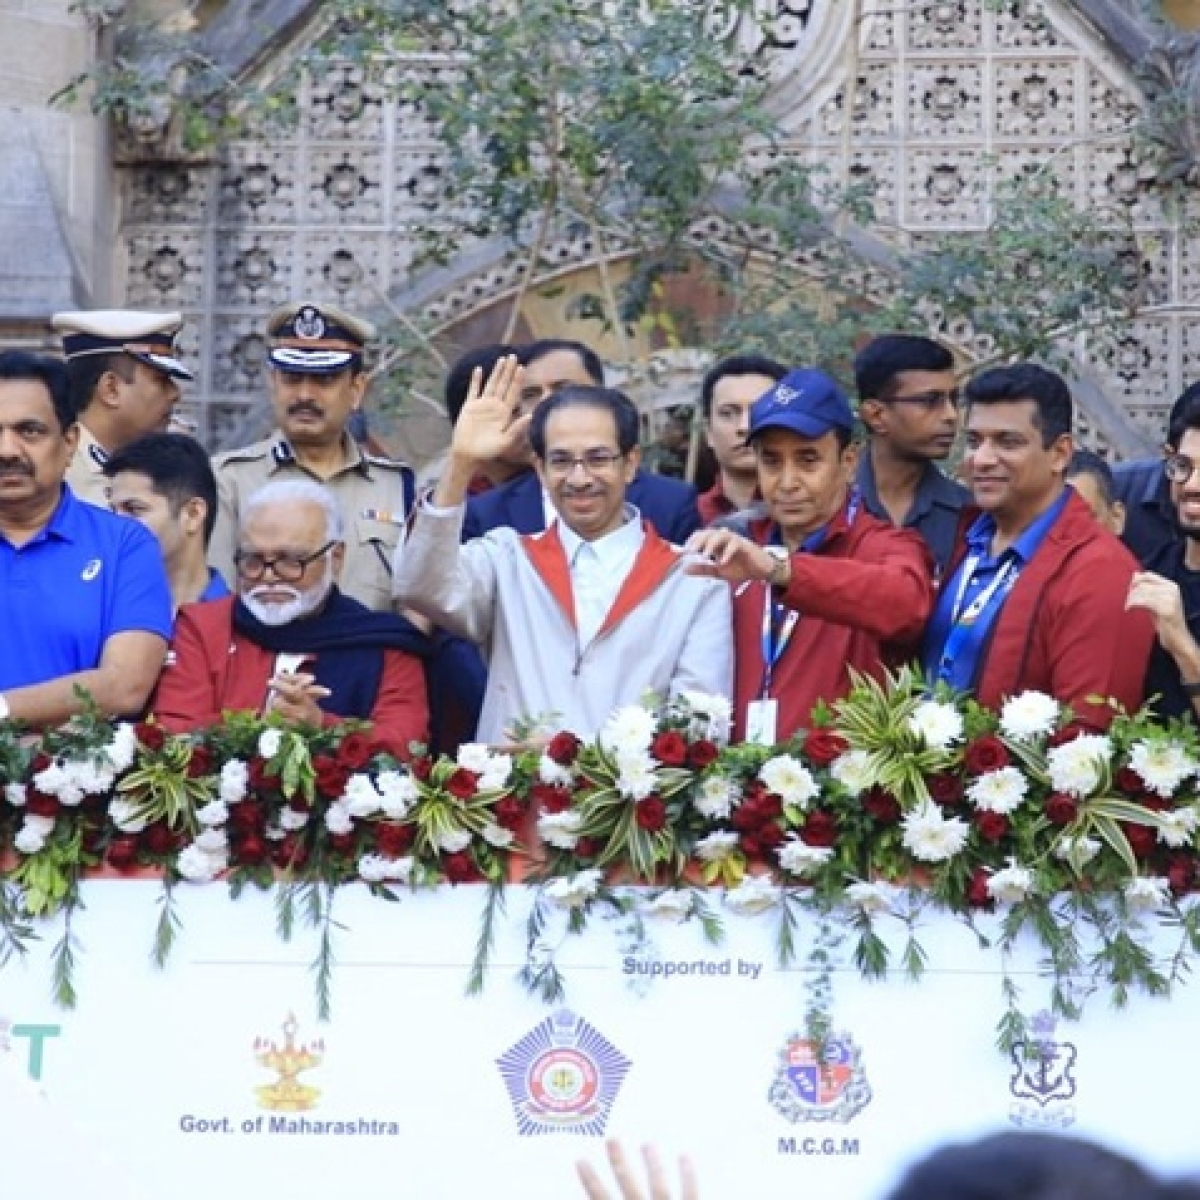 Mumbai Marathon 2020: CM Uddhav Thackeray flags off Dream Run; Kiren Rijiju, Aaditya Thackeray, Chhagan Bhujbal encourage runners